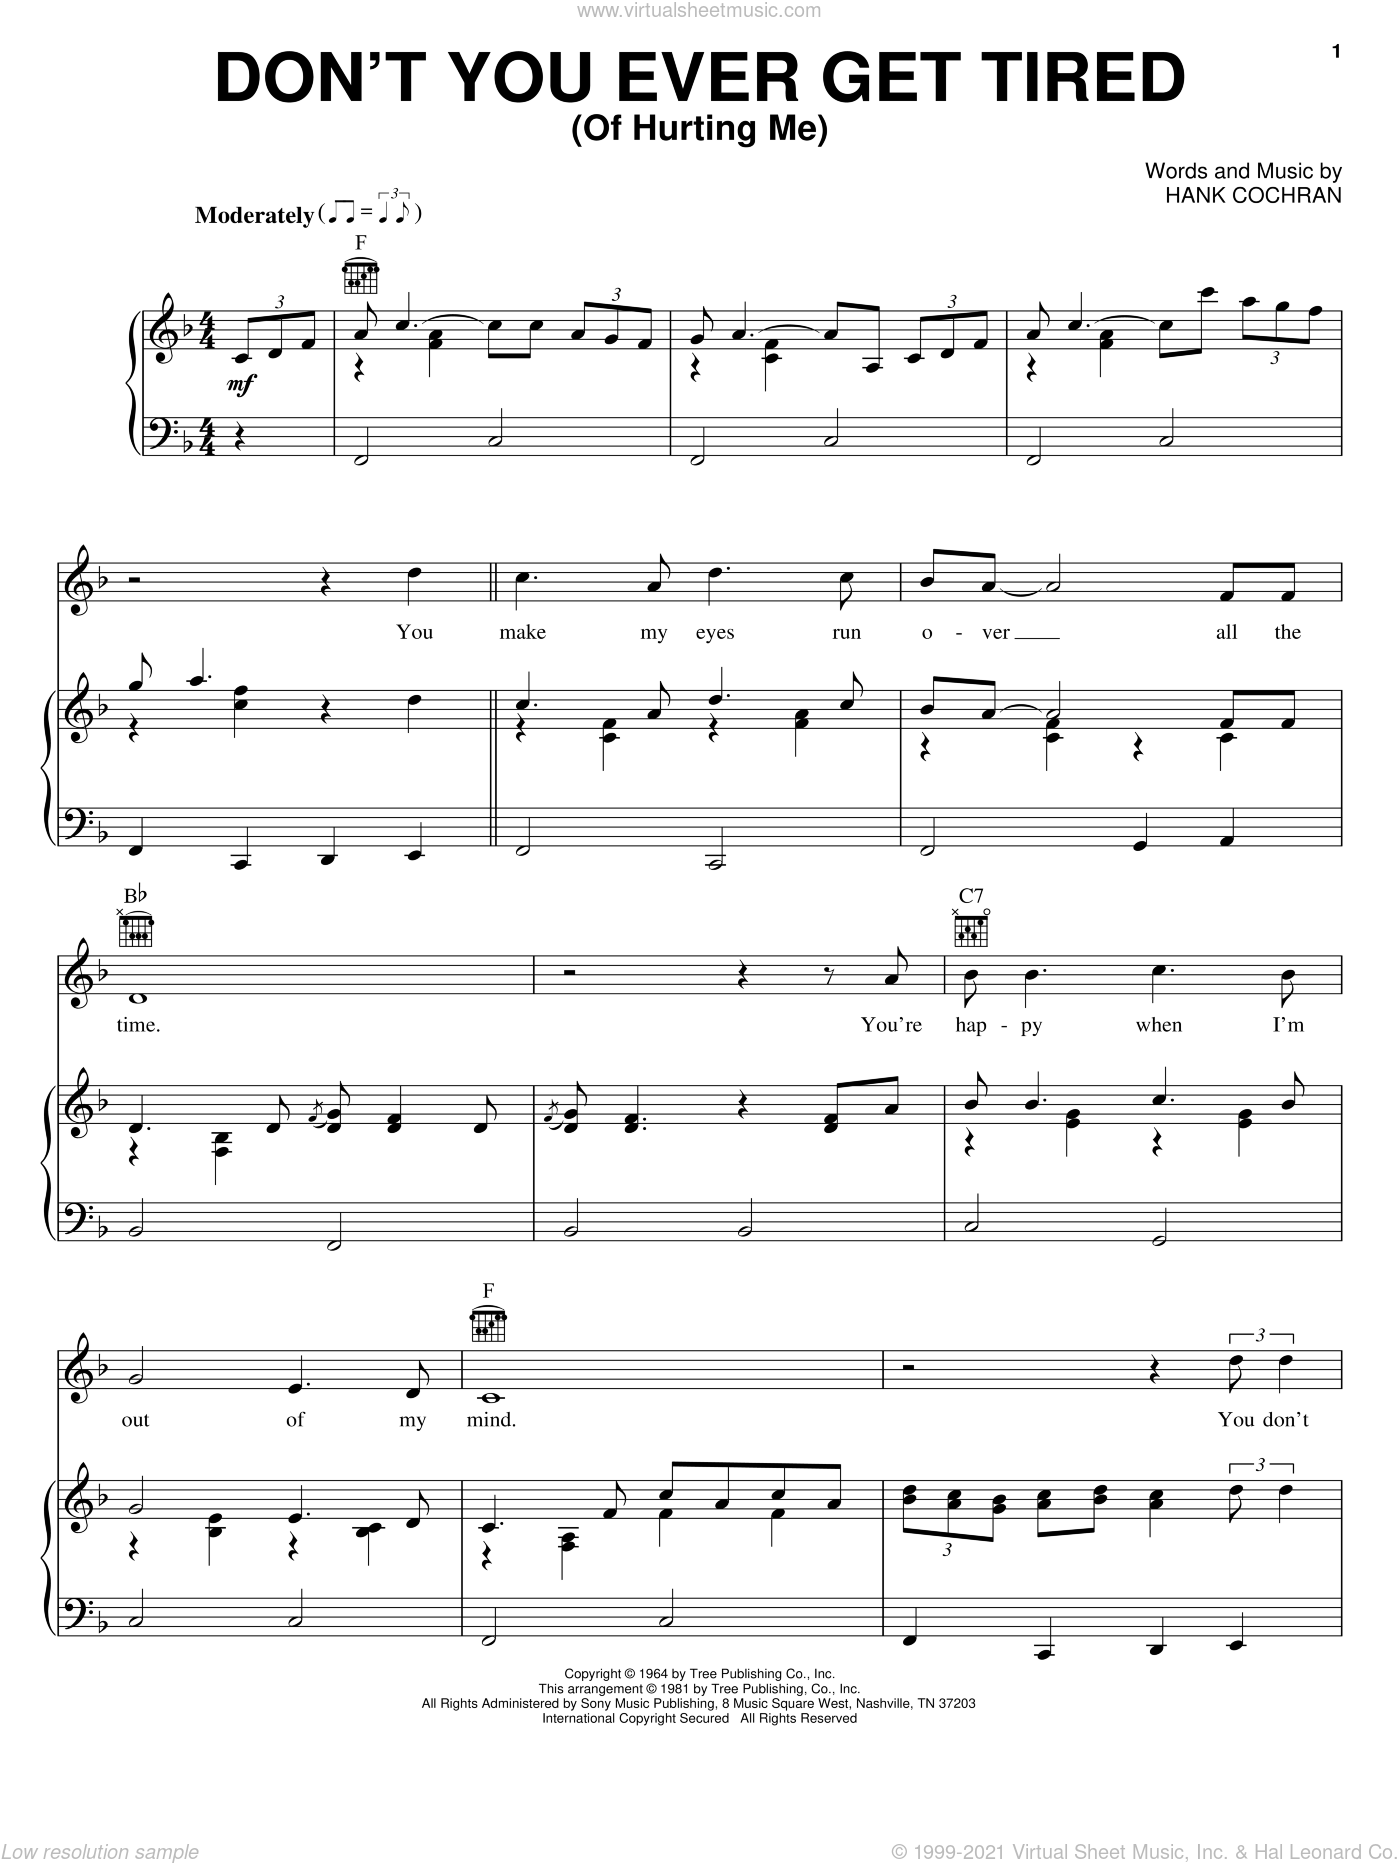 Don't You Ever Get Tired (Of Hurting Me) sheet music for voice, piano or guitar by Willie Nelson, George Jones, Ray Price, Ronnie Milsap and Hank Cochran, intermediate skill level